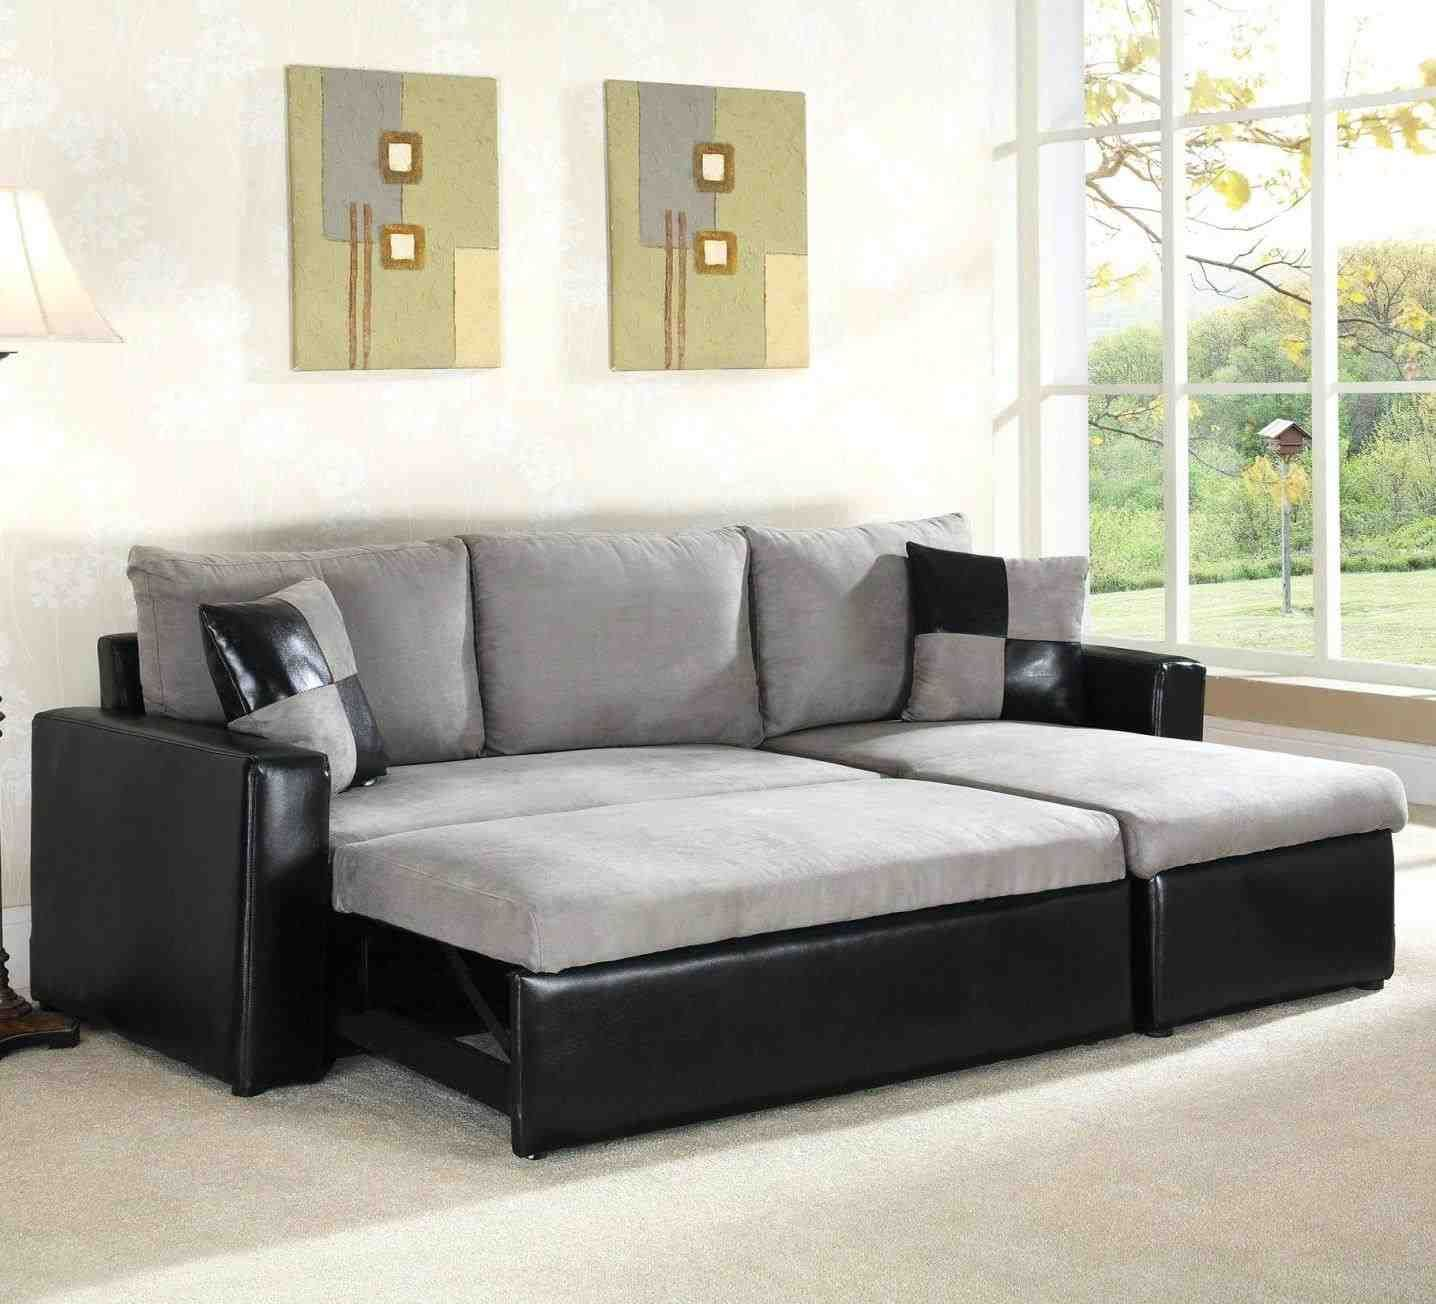 Groovy Cheap Sofa Ireland Full Size Of Couch Room Sofas Ireland Andrewgaddart Wooden Chair Designs For Living Room Andrewgaddartcom